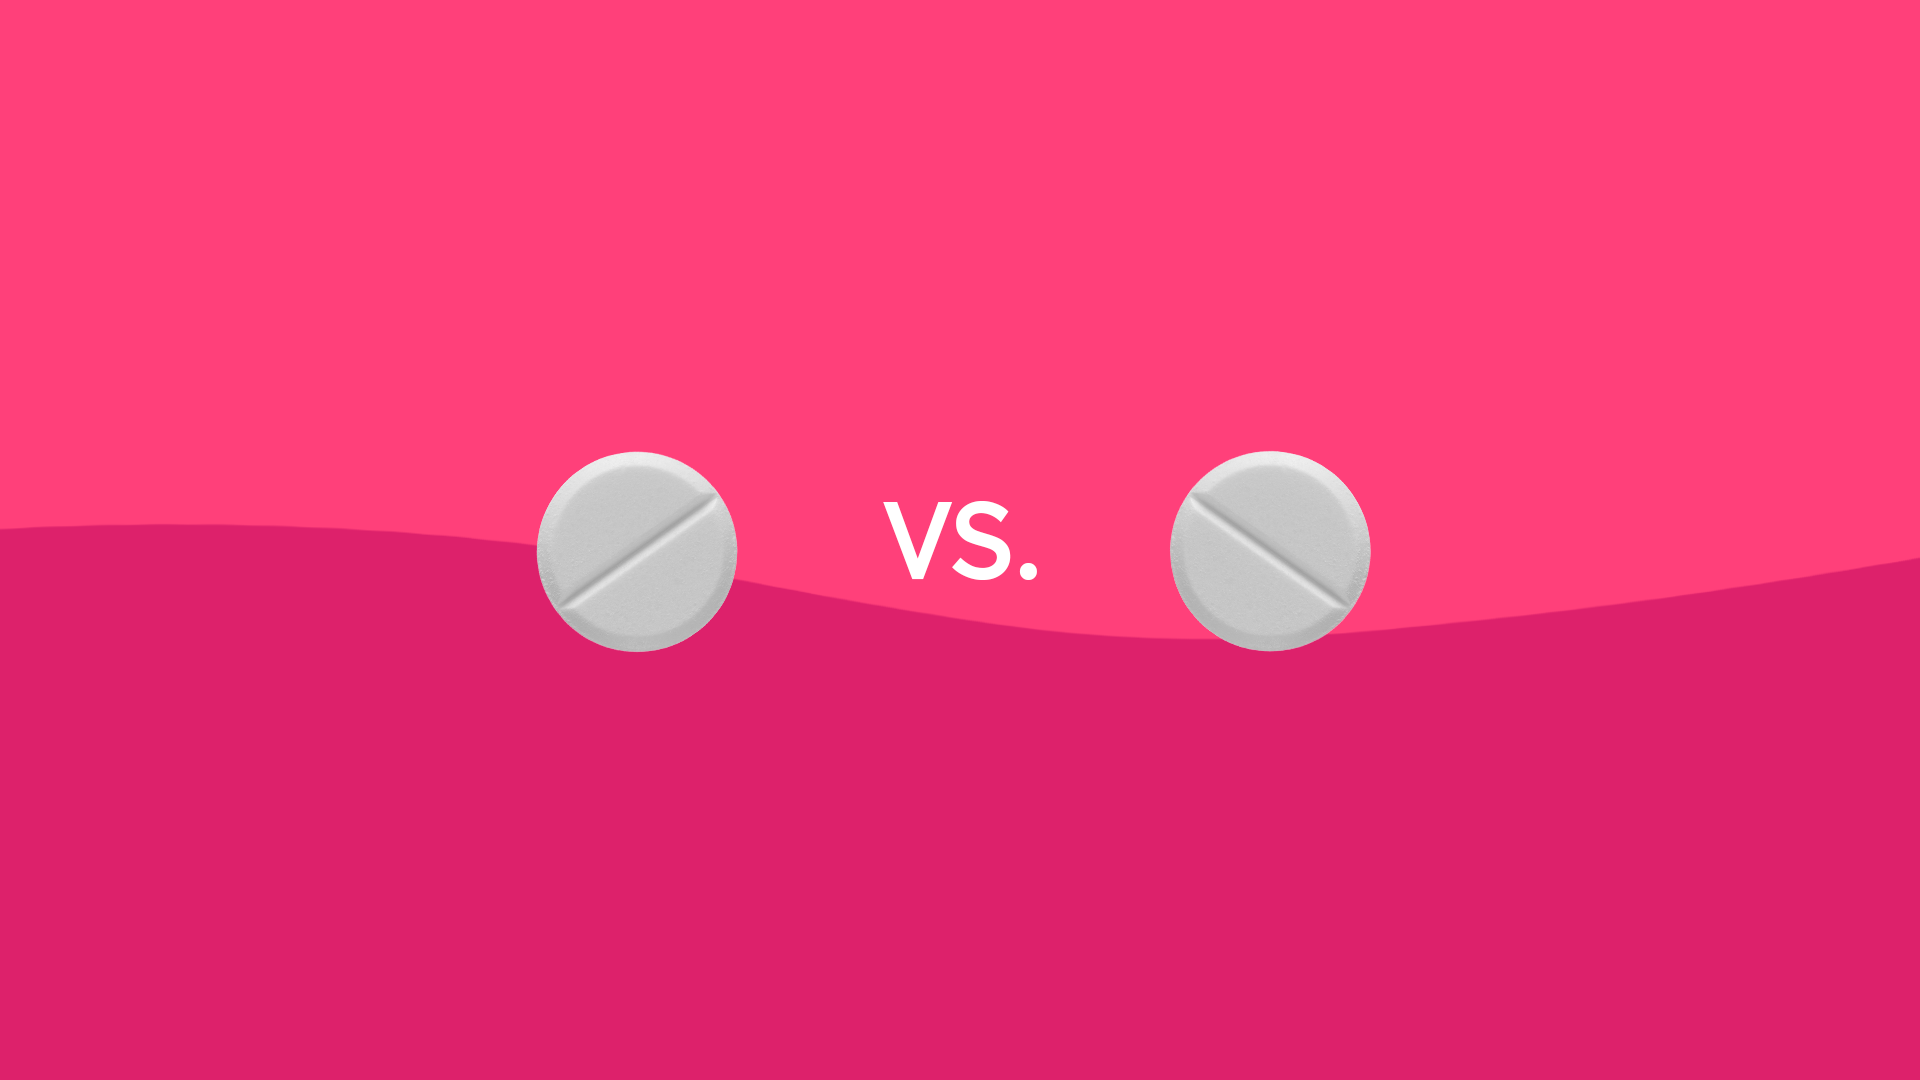 Armodafinil vs. modafinil: Differences, similarities, and which is better for you